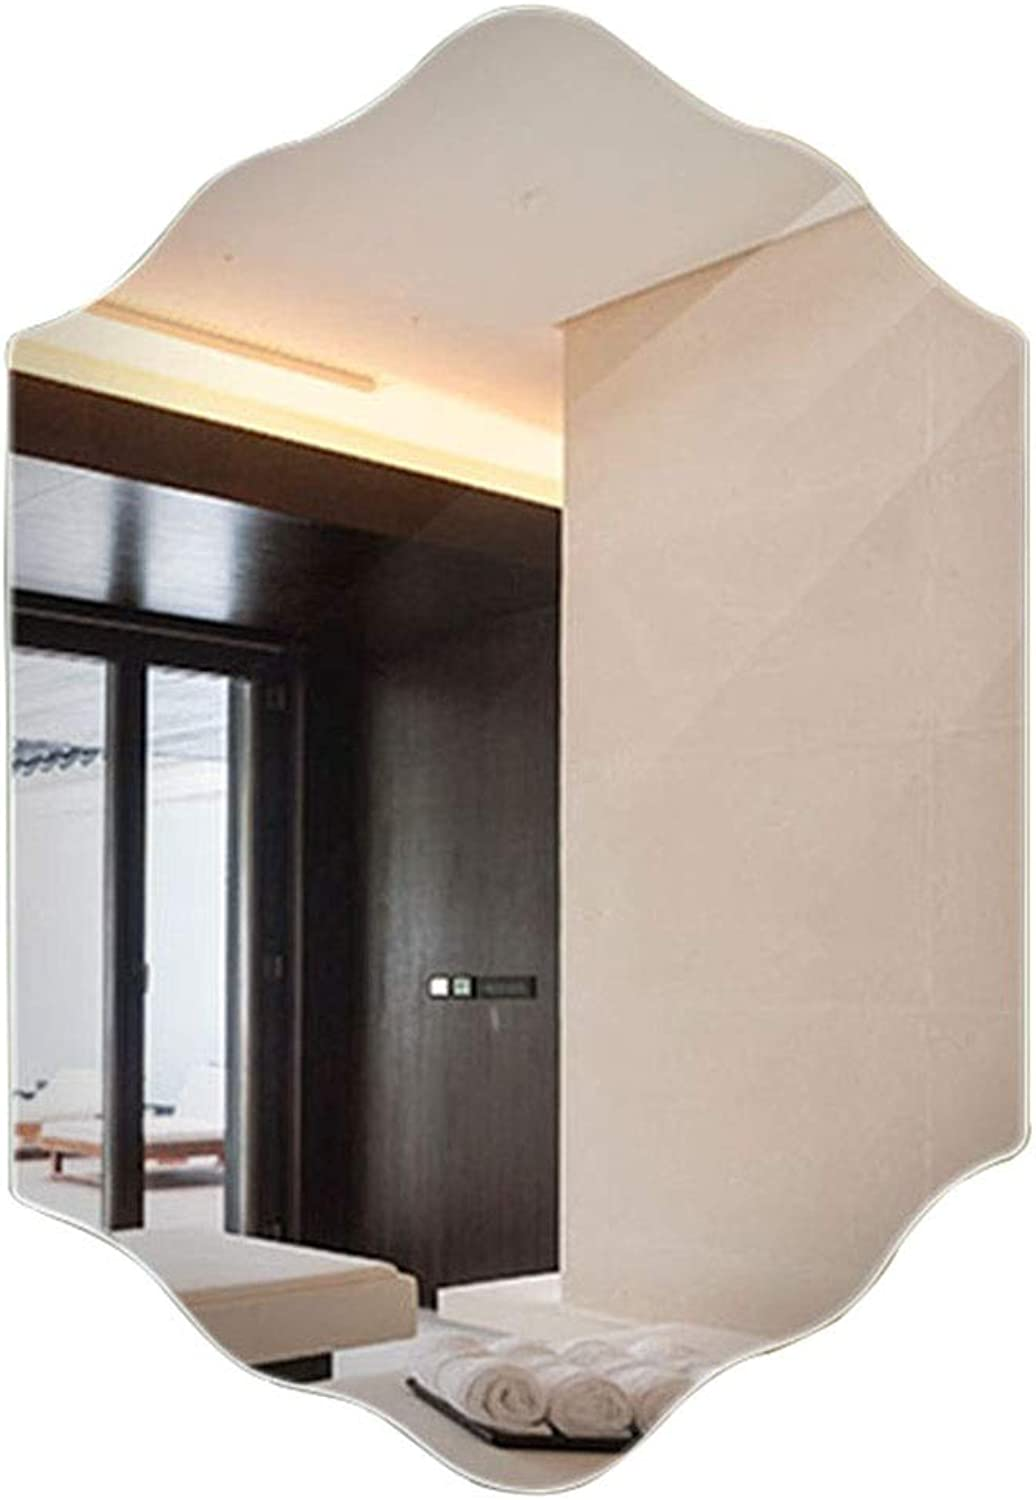 Mirrors Frameless Bathroom Mirror Hanging Wall Bathroom Mirror Salon Creative Mirror Personality Wall Mirror Living Room Decorative Mirror Bedroom Fitting Mirror Wall-Mounted Vanity Mirrors